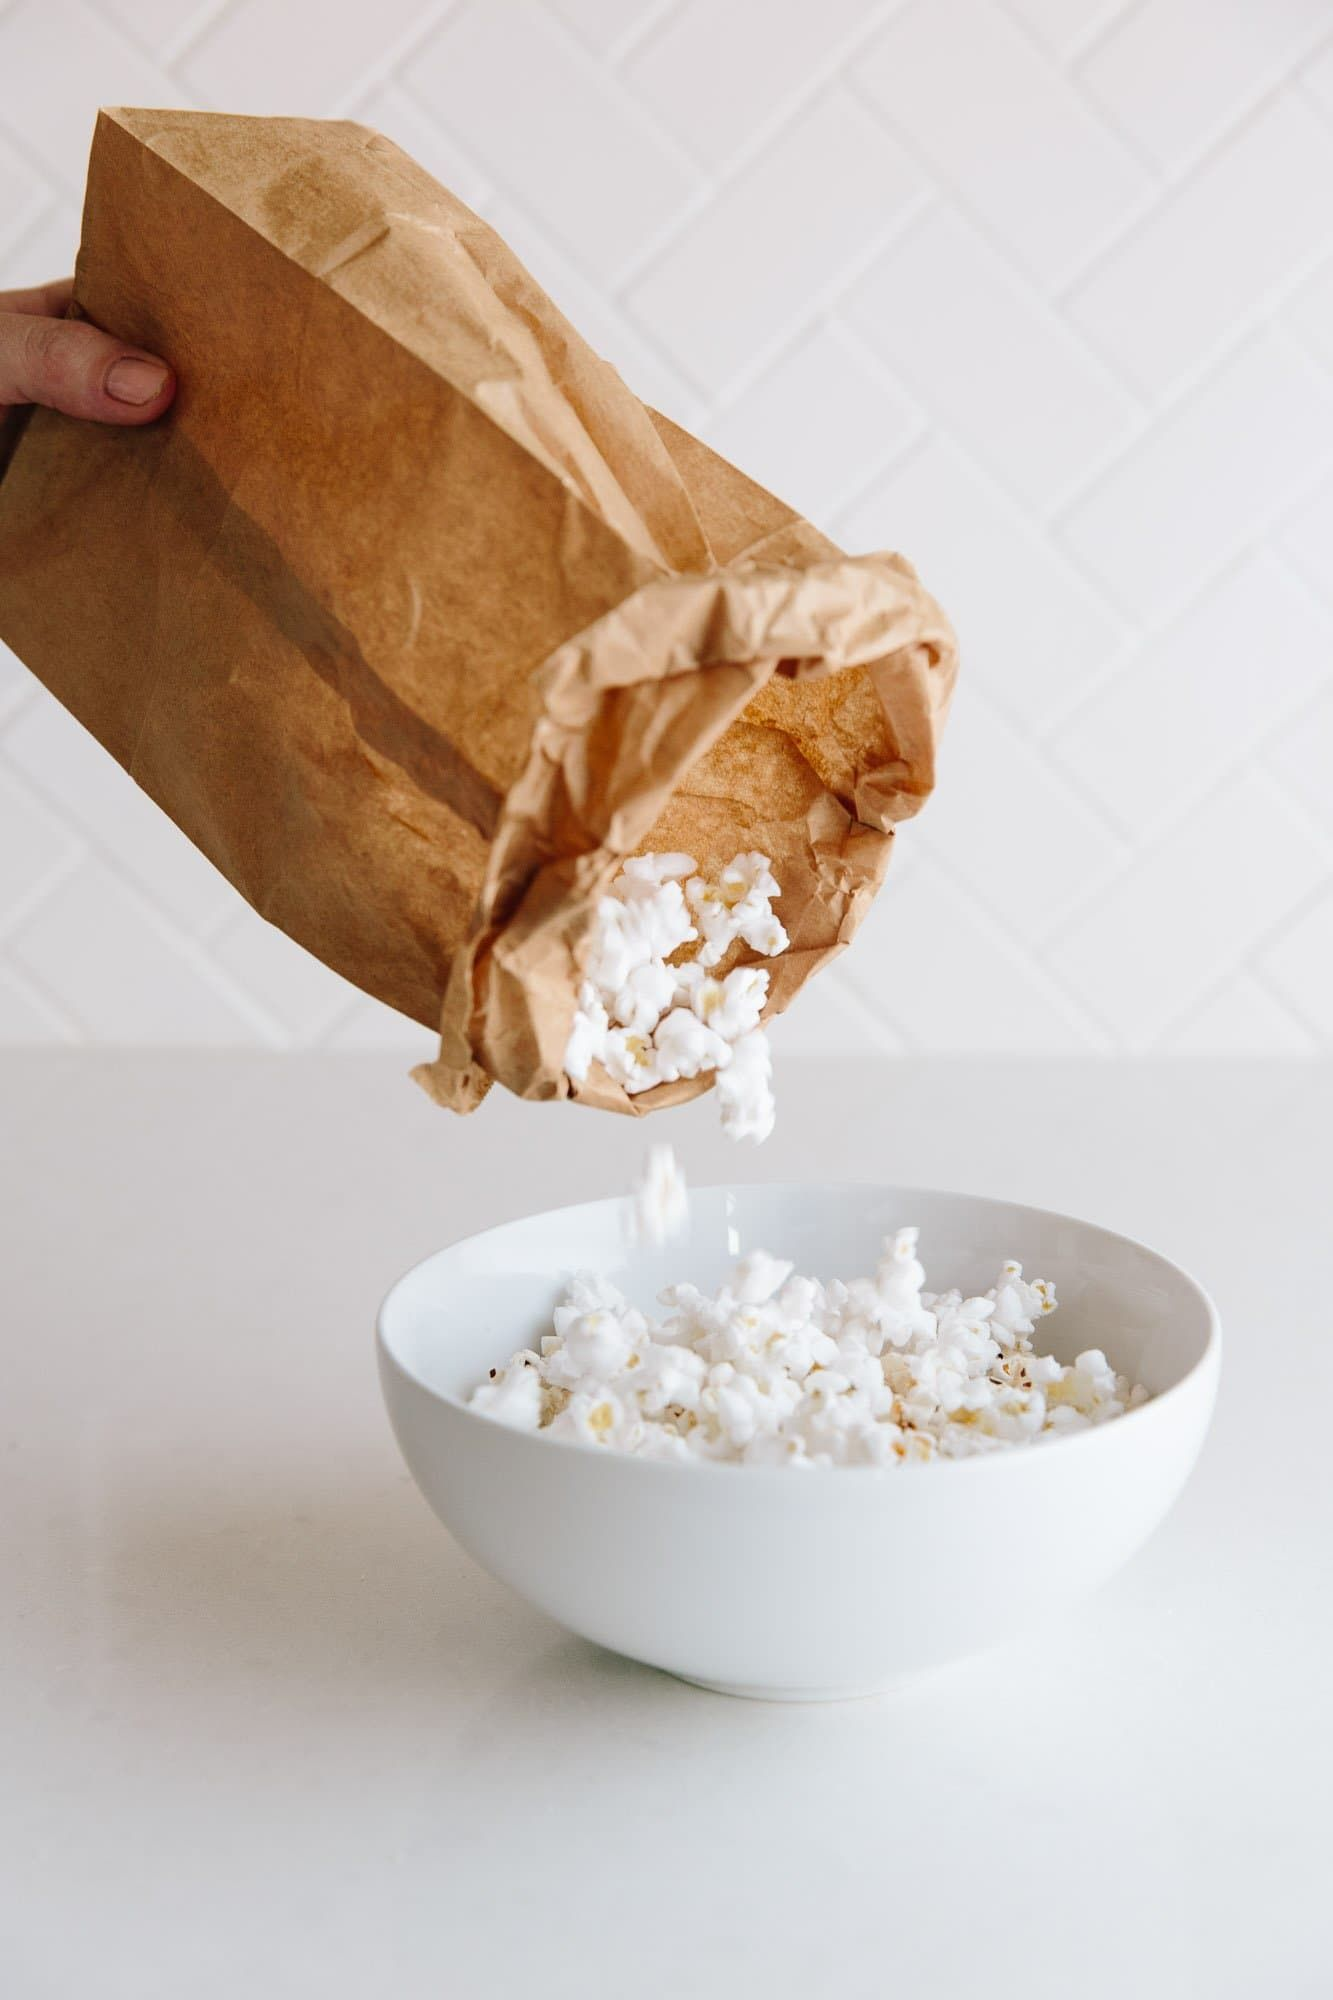 How To Make Popcorn in the Microwave — Cooking Lessons from The Kitchn